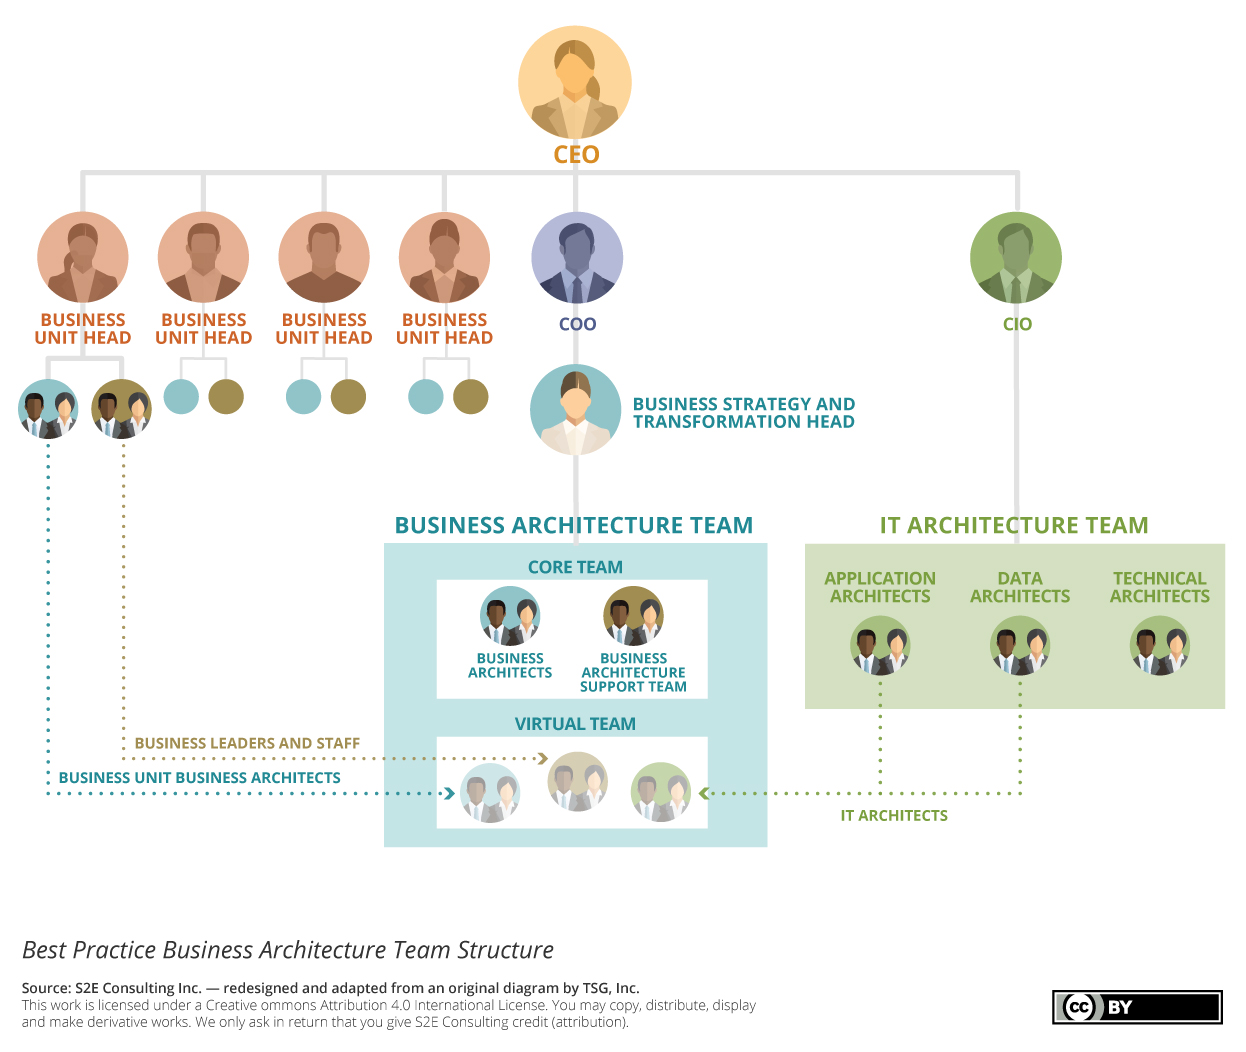 S2E Business Architecture Team Structure